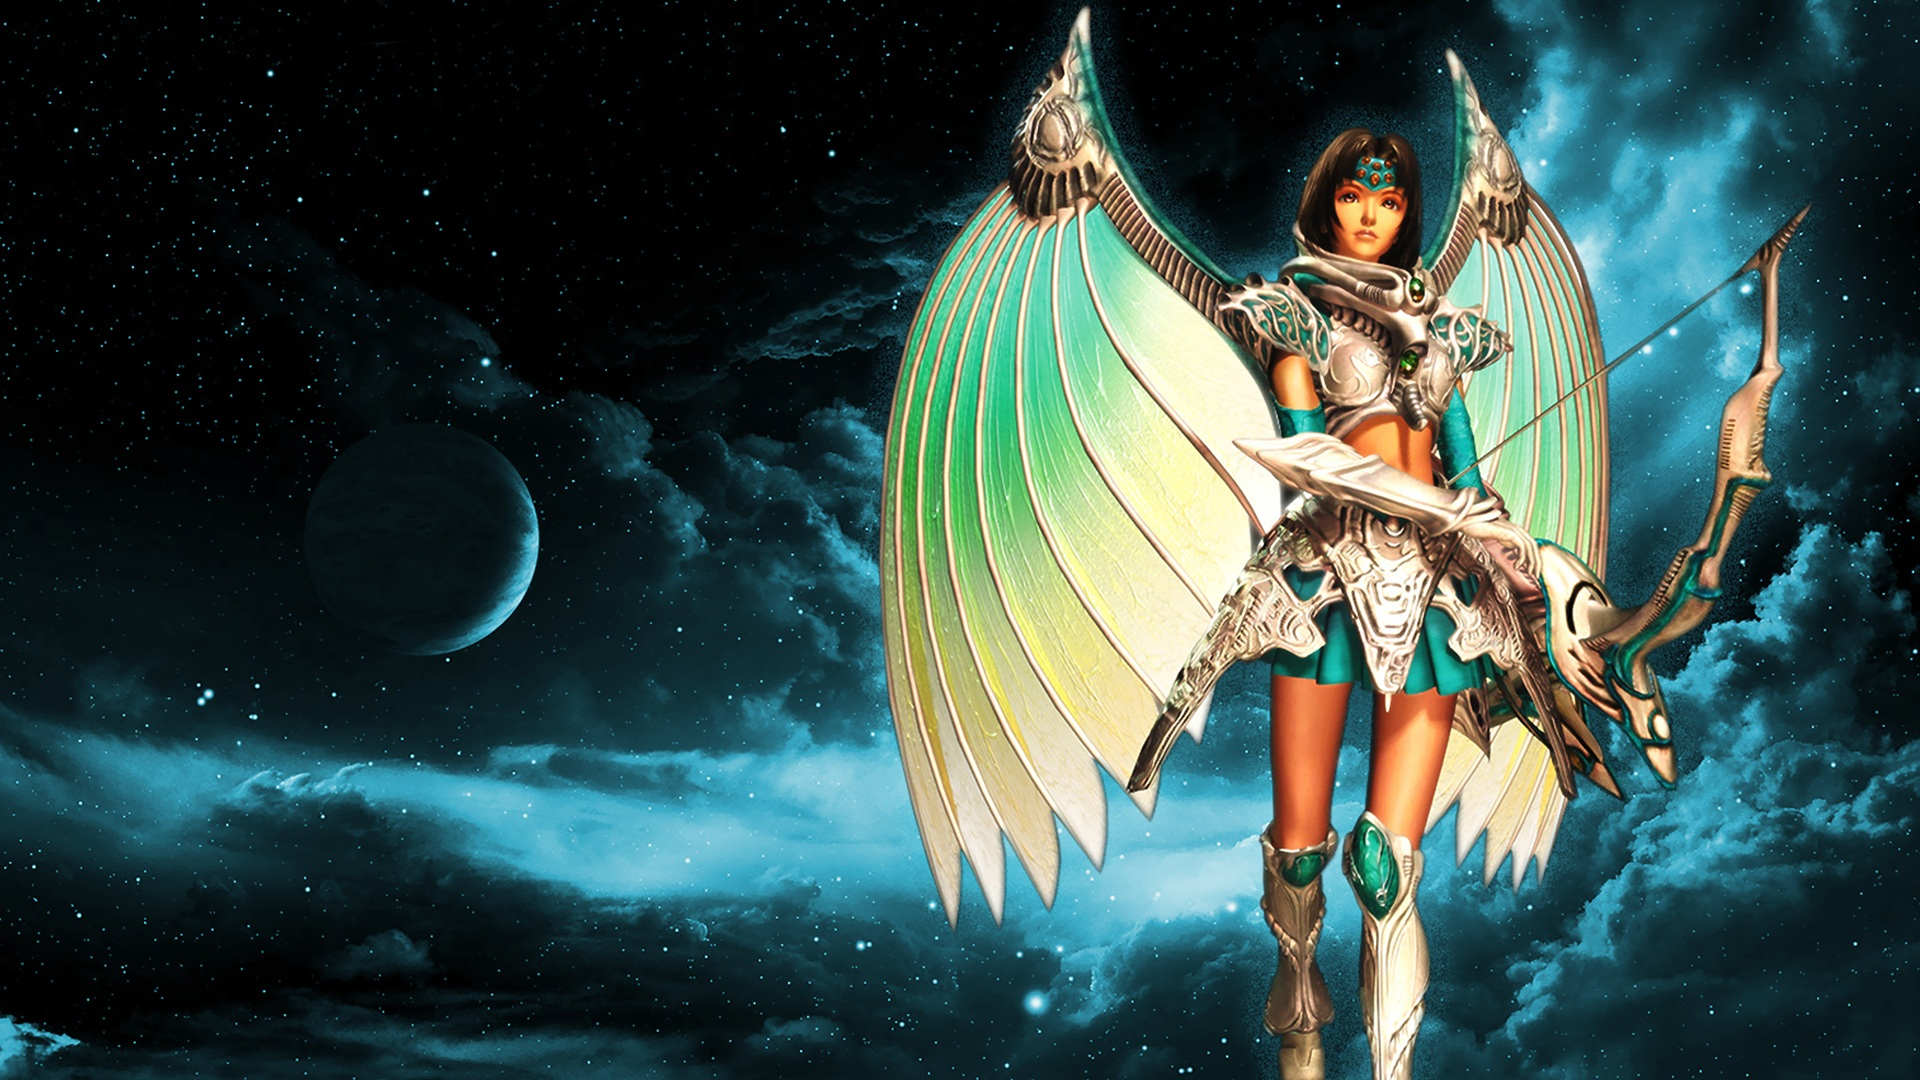 Video Game - Legend Of Dragoon  - Fantasy - Angel - Warrior - Archer - Bow Wallpaper